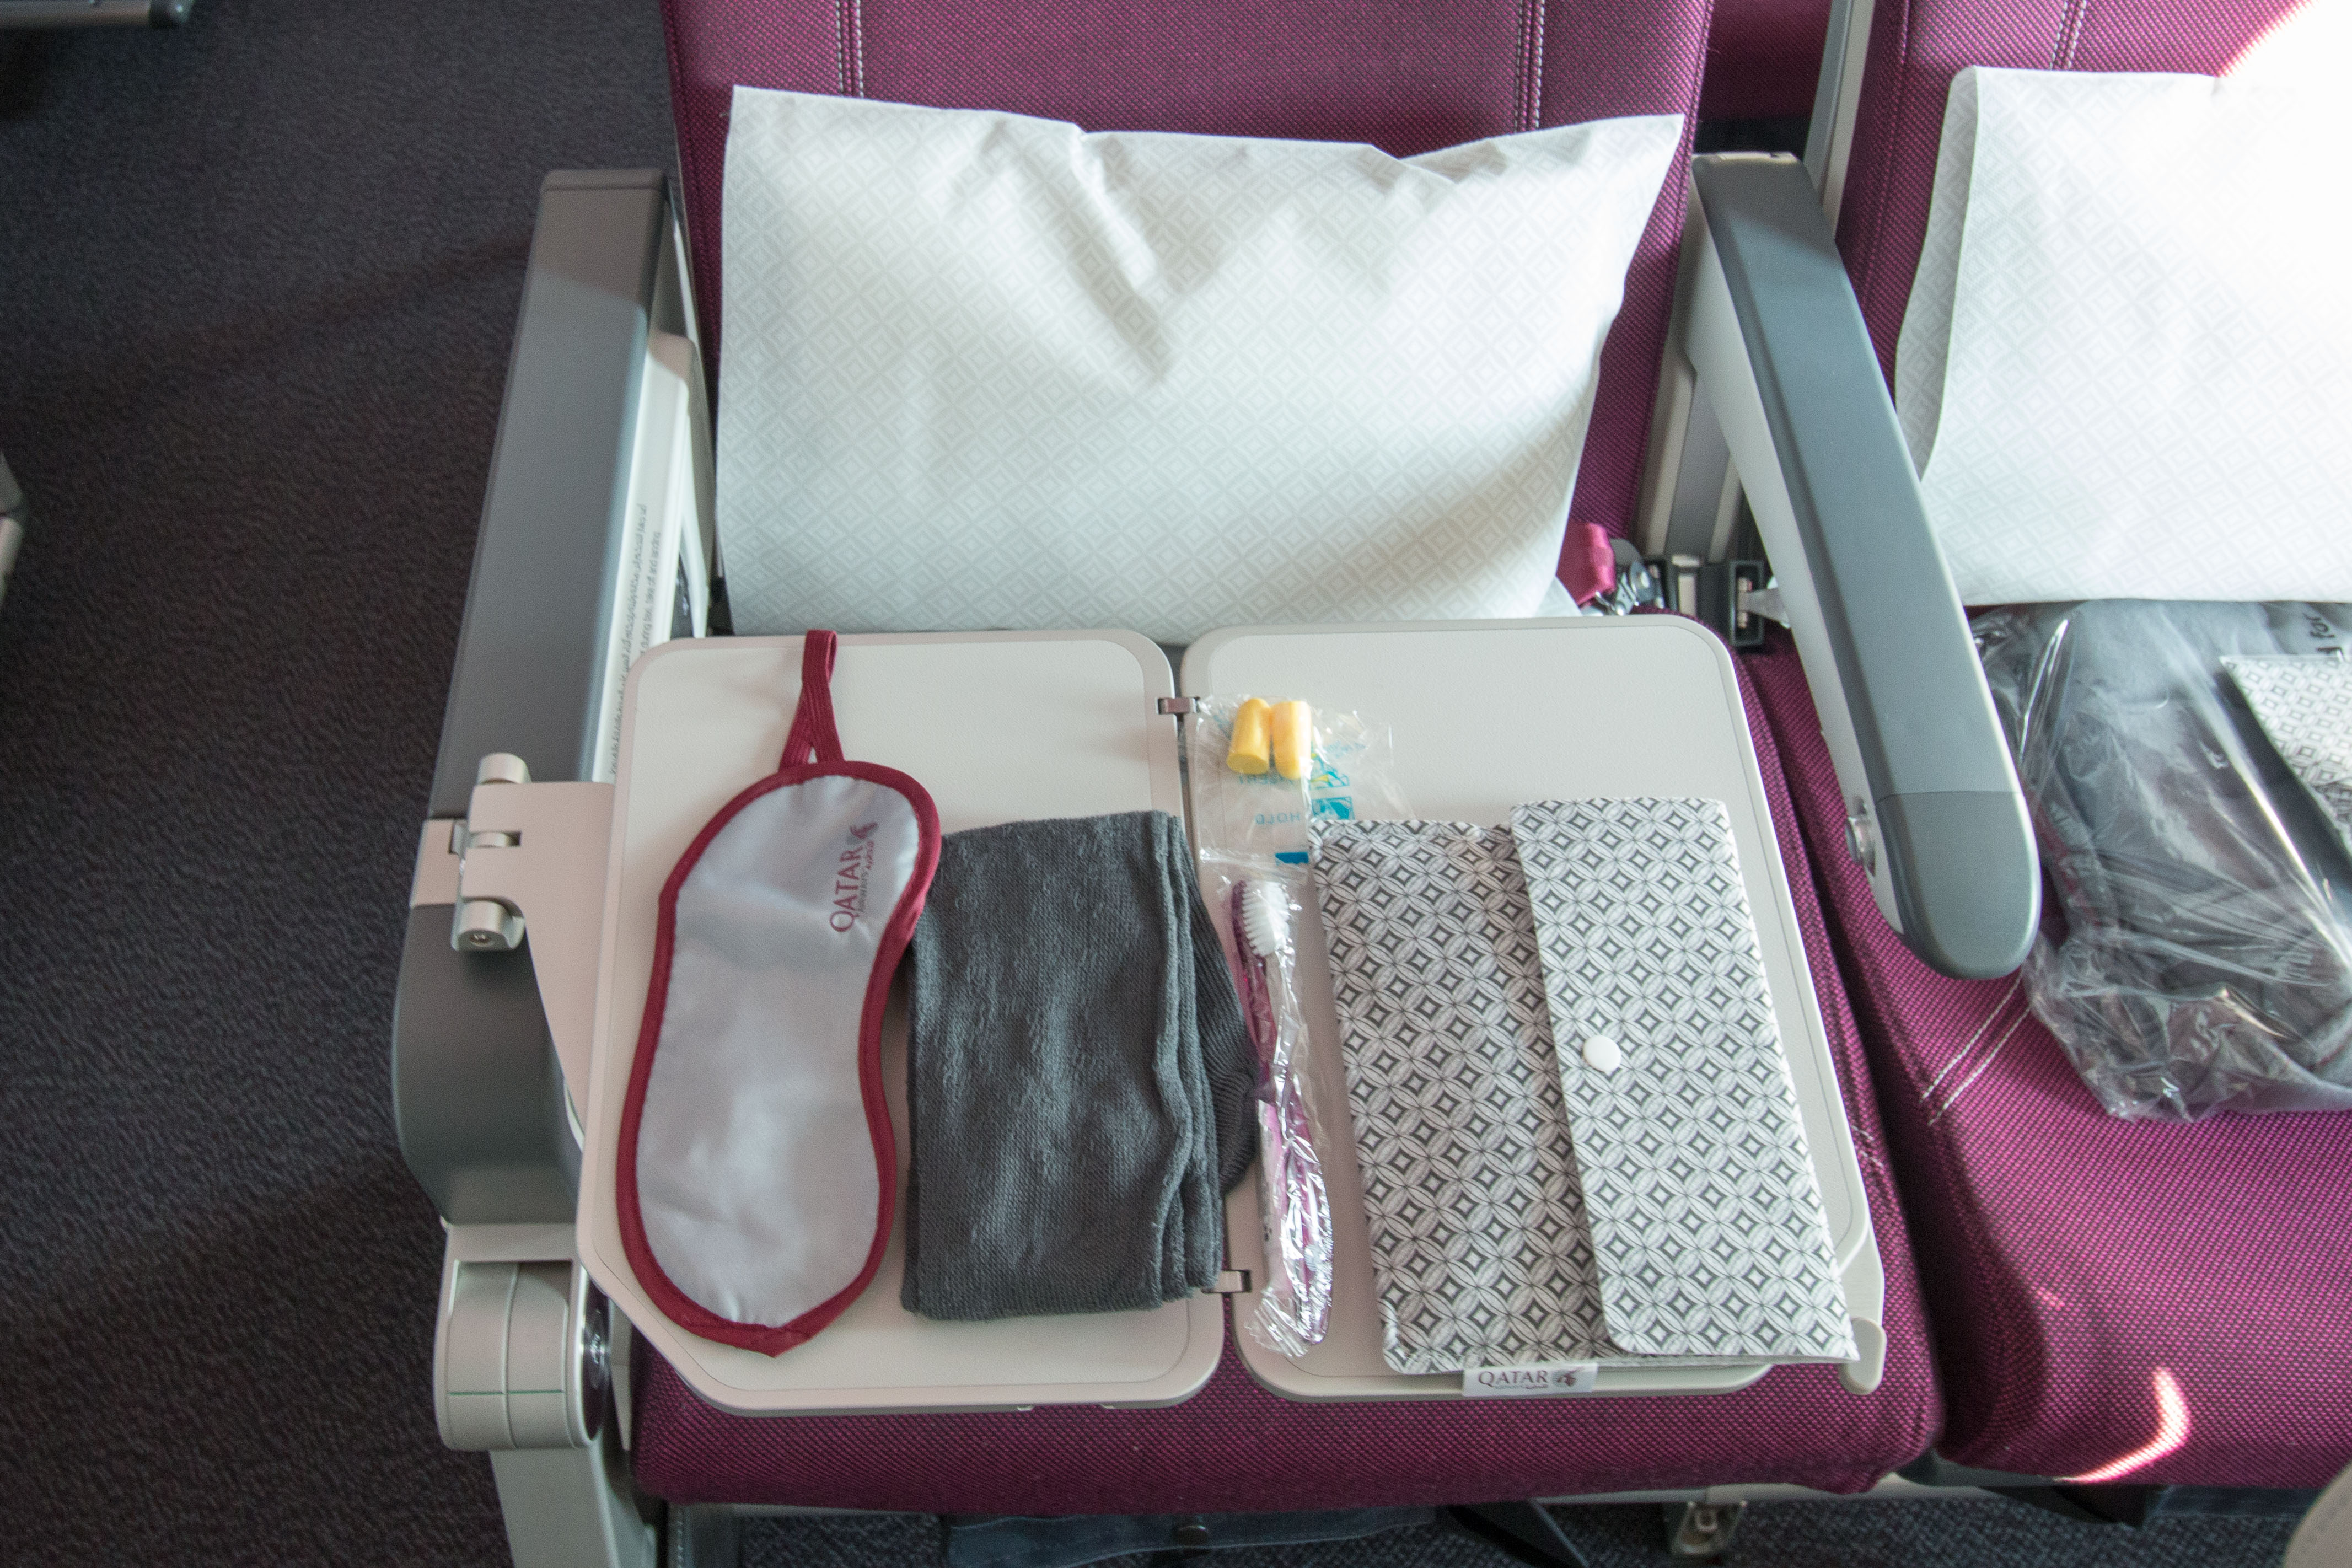 a328b5cd1354 Even passengers in economy get a small amenity kit. It includes an eyemask